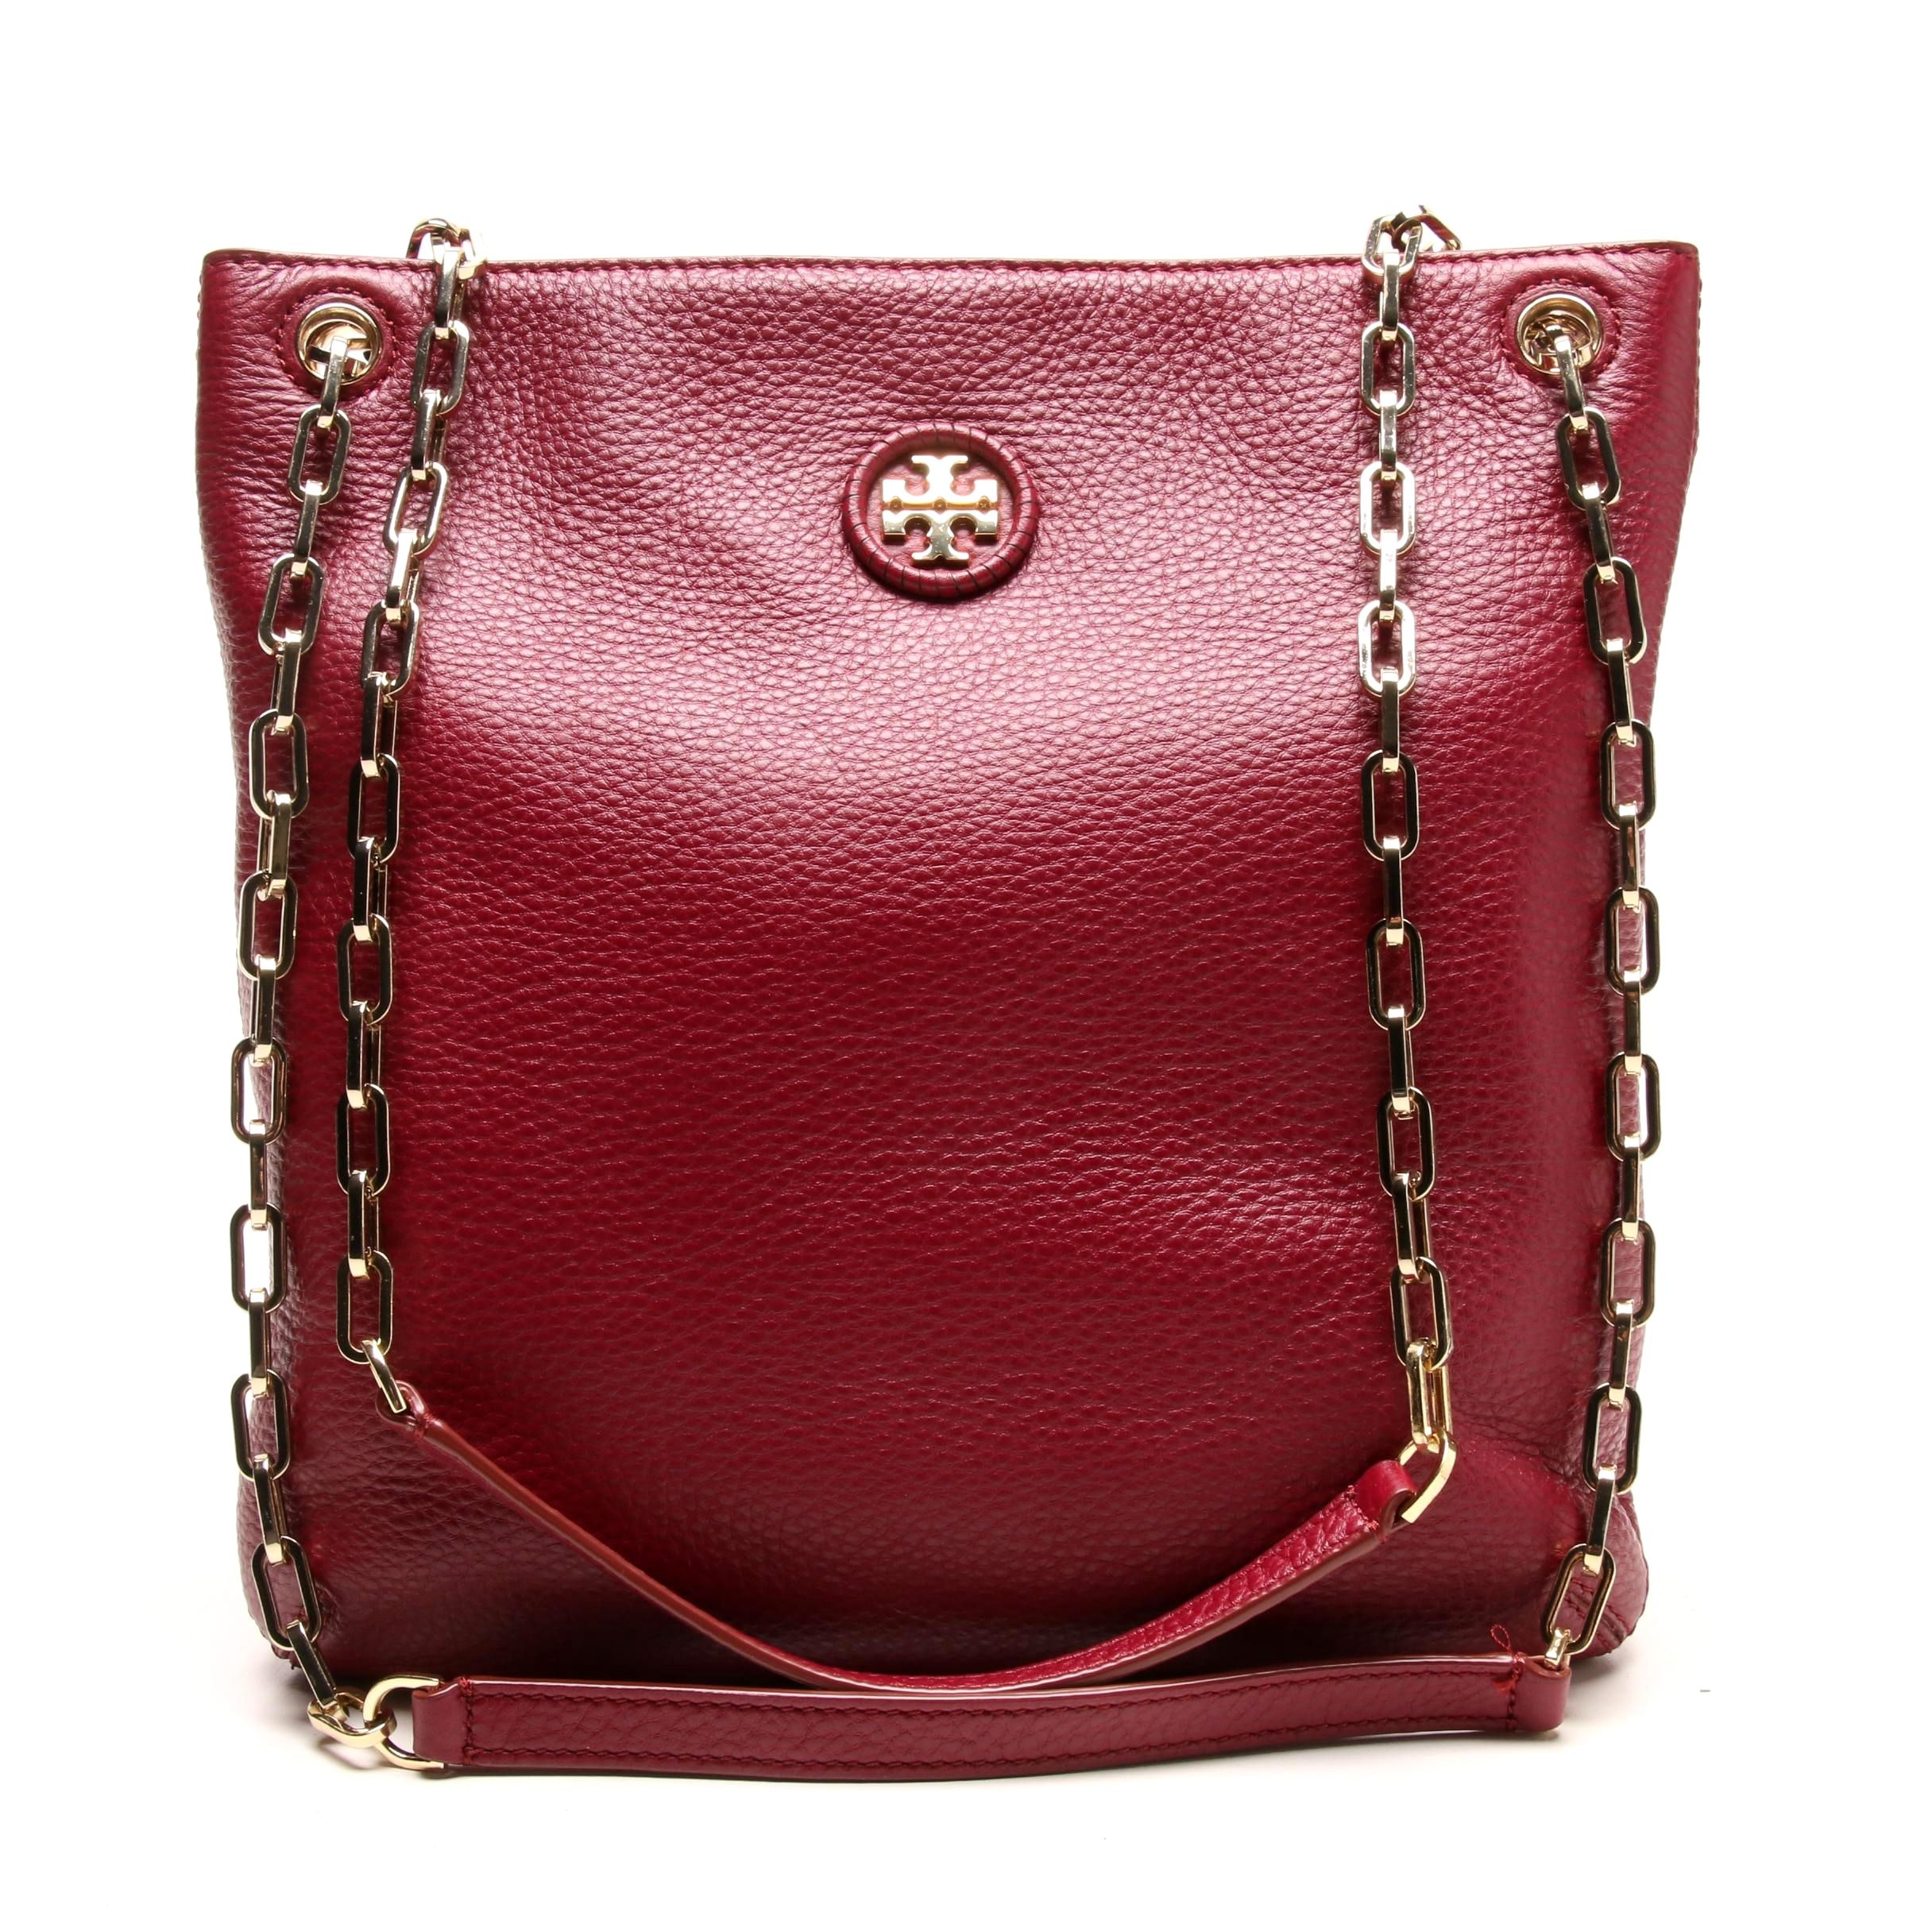 Tory Burch Burgundy Leather Shoulder Bag